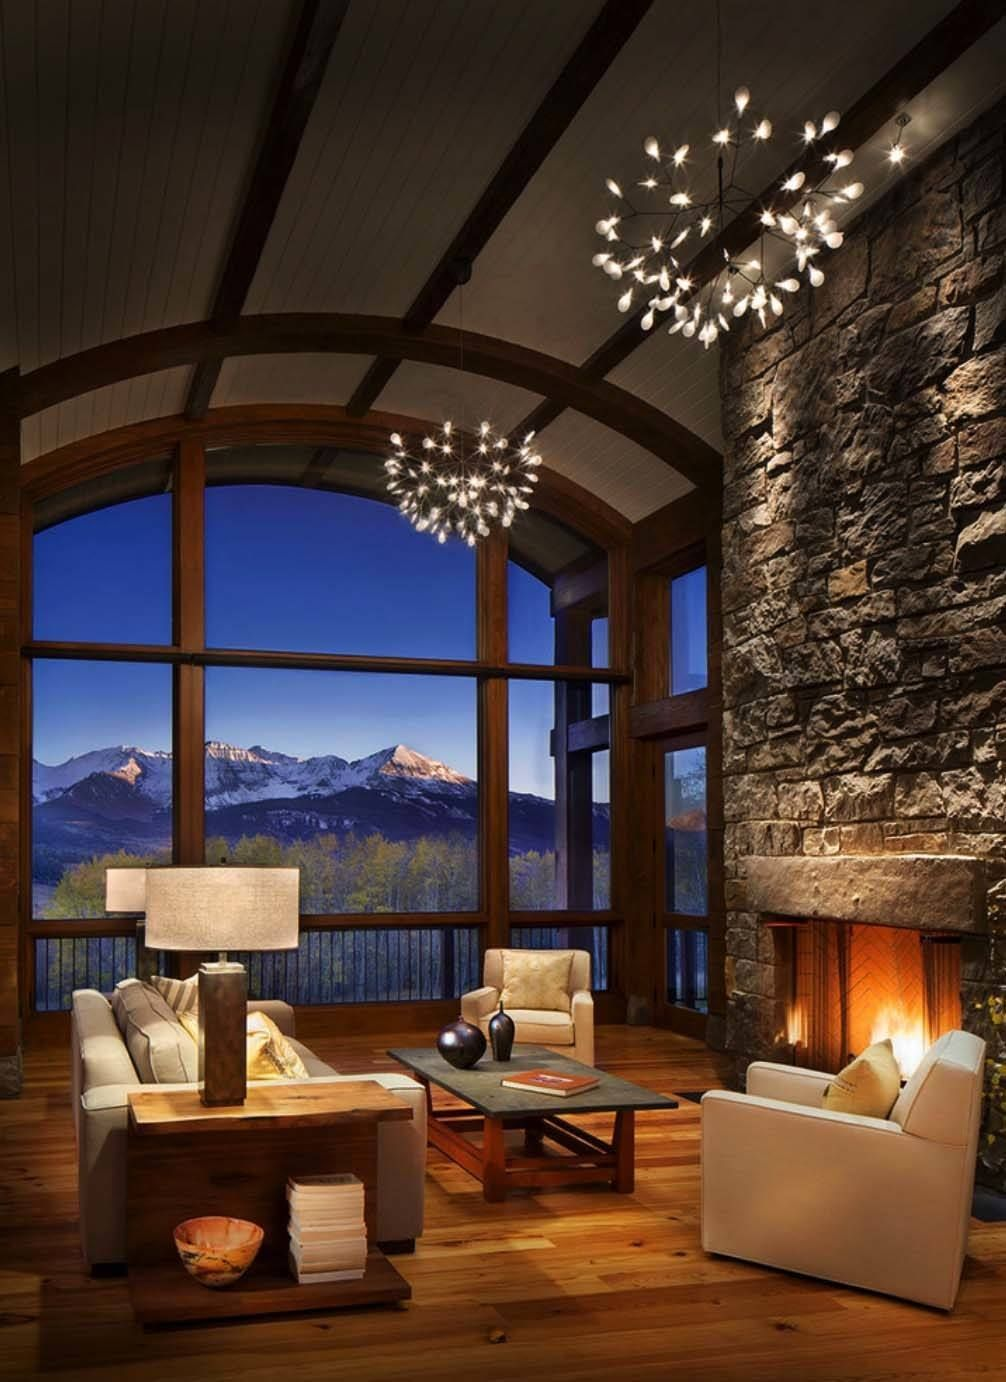 Fabulous Mountain Cabin In Colorado Captures Views Of Mount Wilson Cabin Room Design Rustic Living Room Design Rustic House